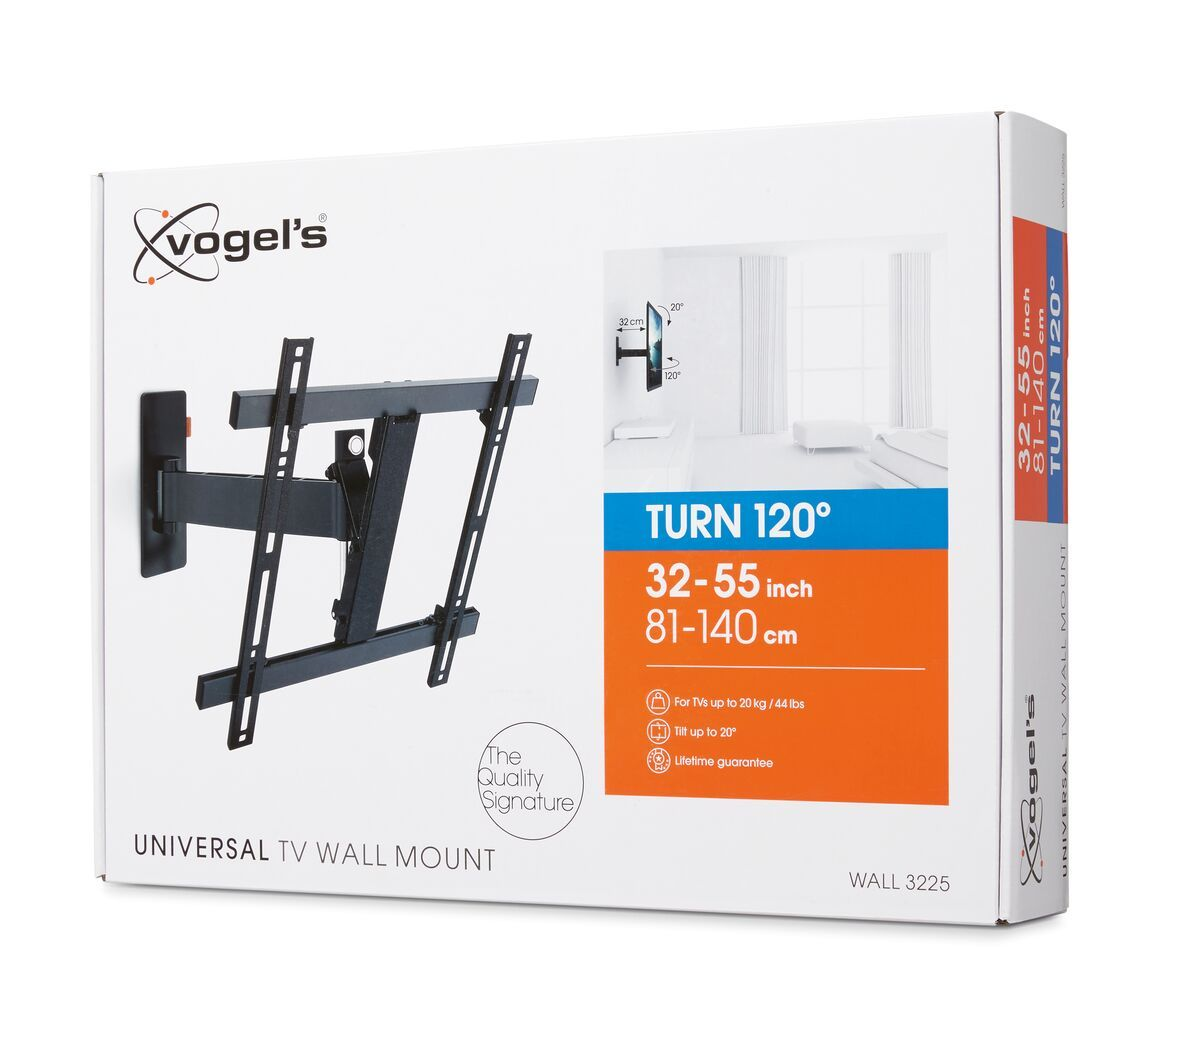 Vogel's WALL 3225 Staffa TV Girovole - Adatto per televisori da 32 a 55 pollici - Movimento (fino a 120°) - Inclinazione fino a 20° - Pack shot 3D